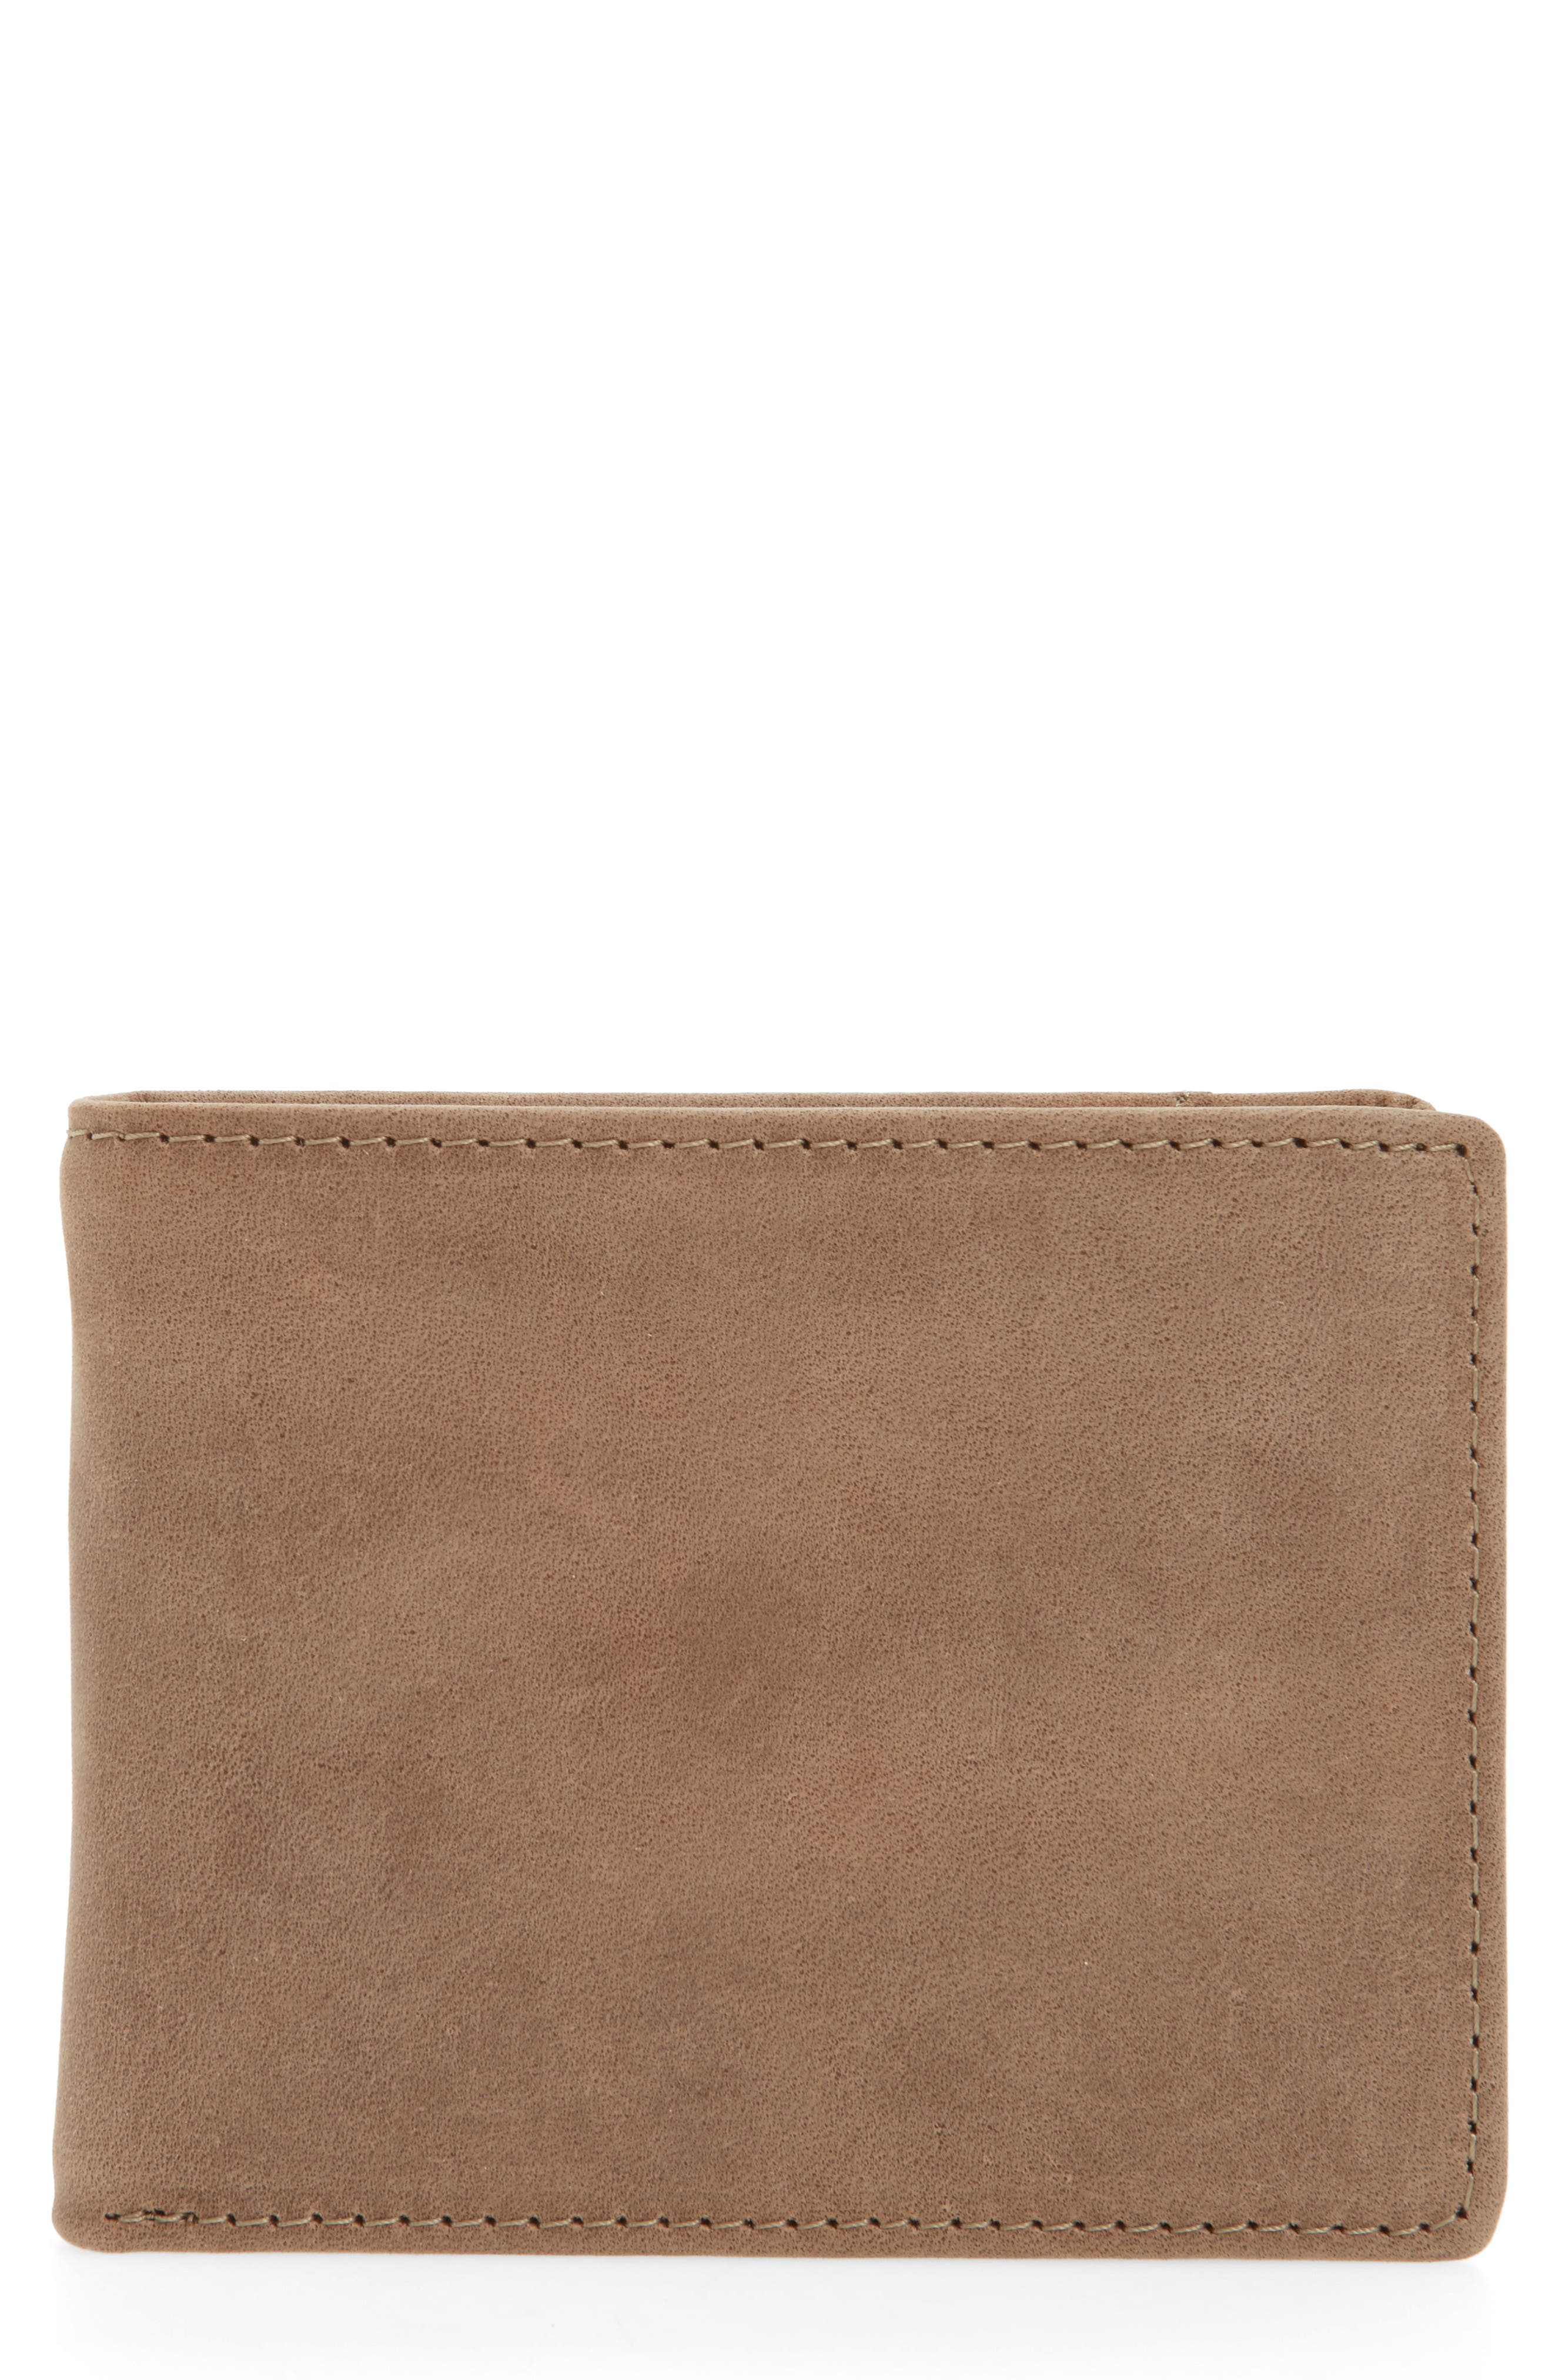 Upton Leather Wallet,                         Main,                         color, Brown Earth